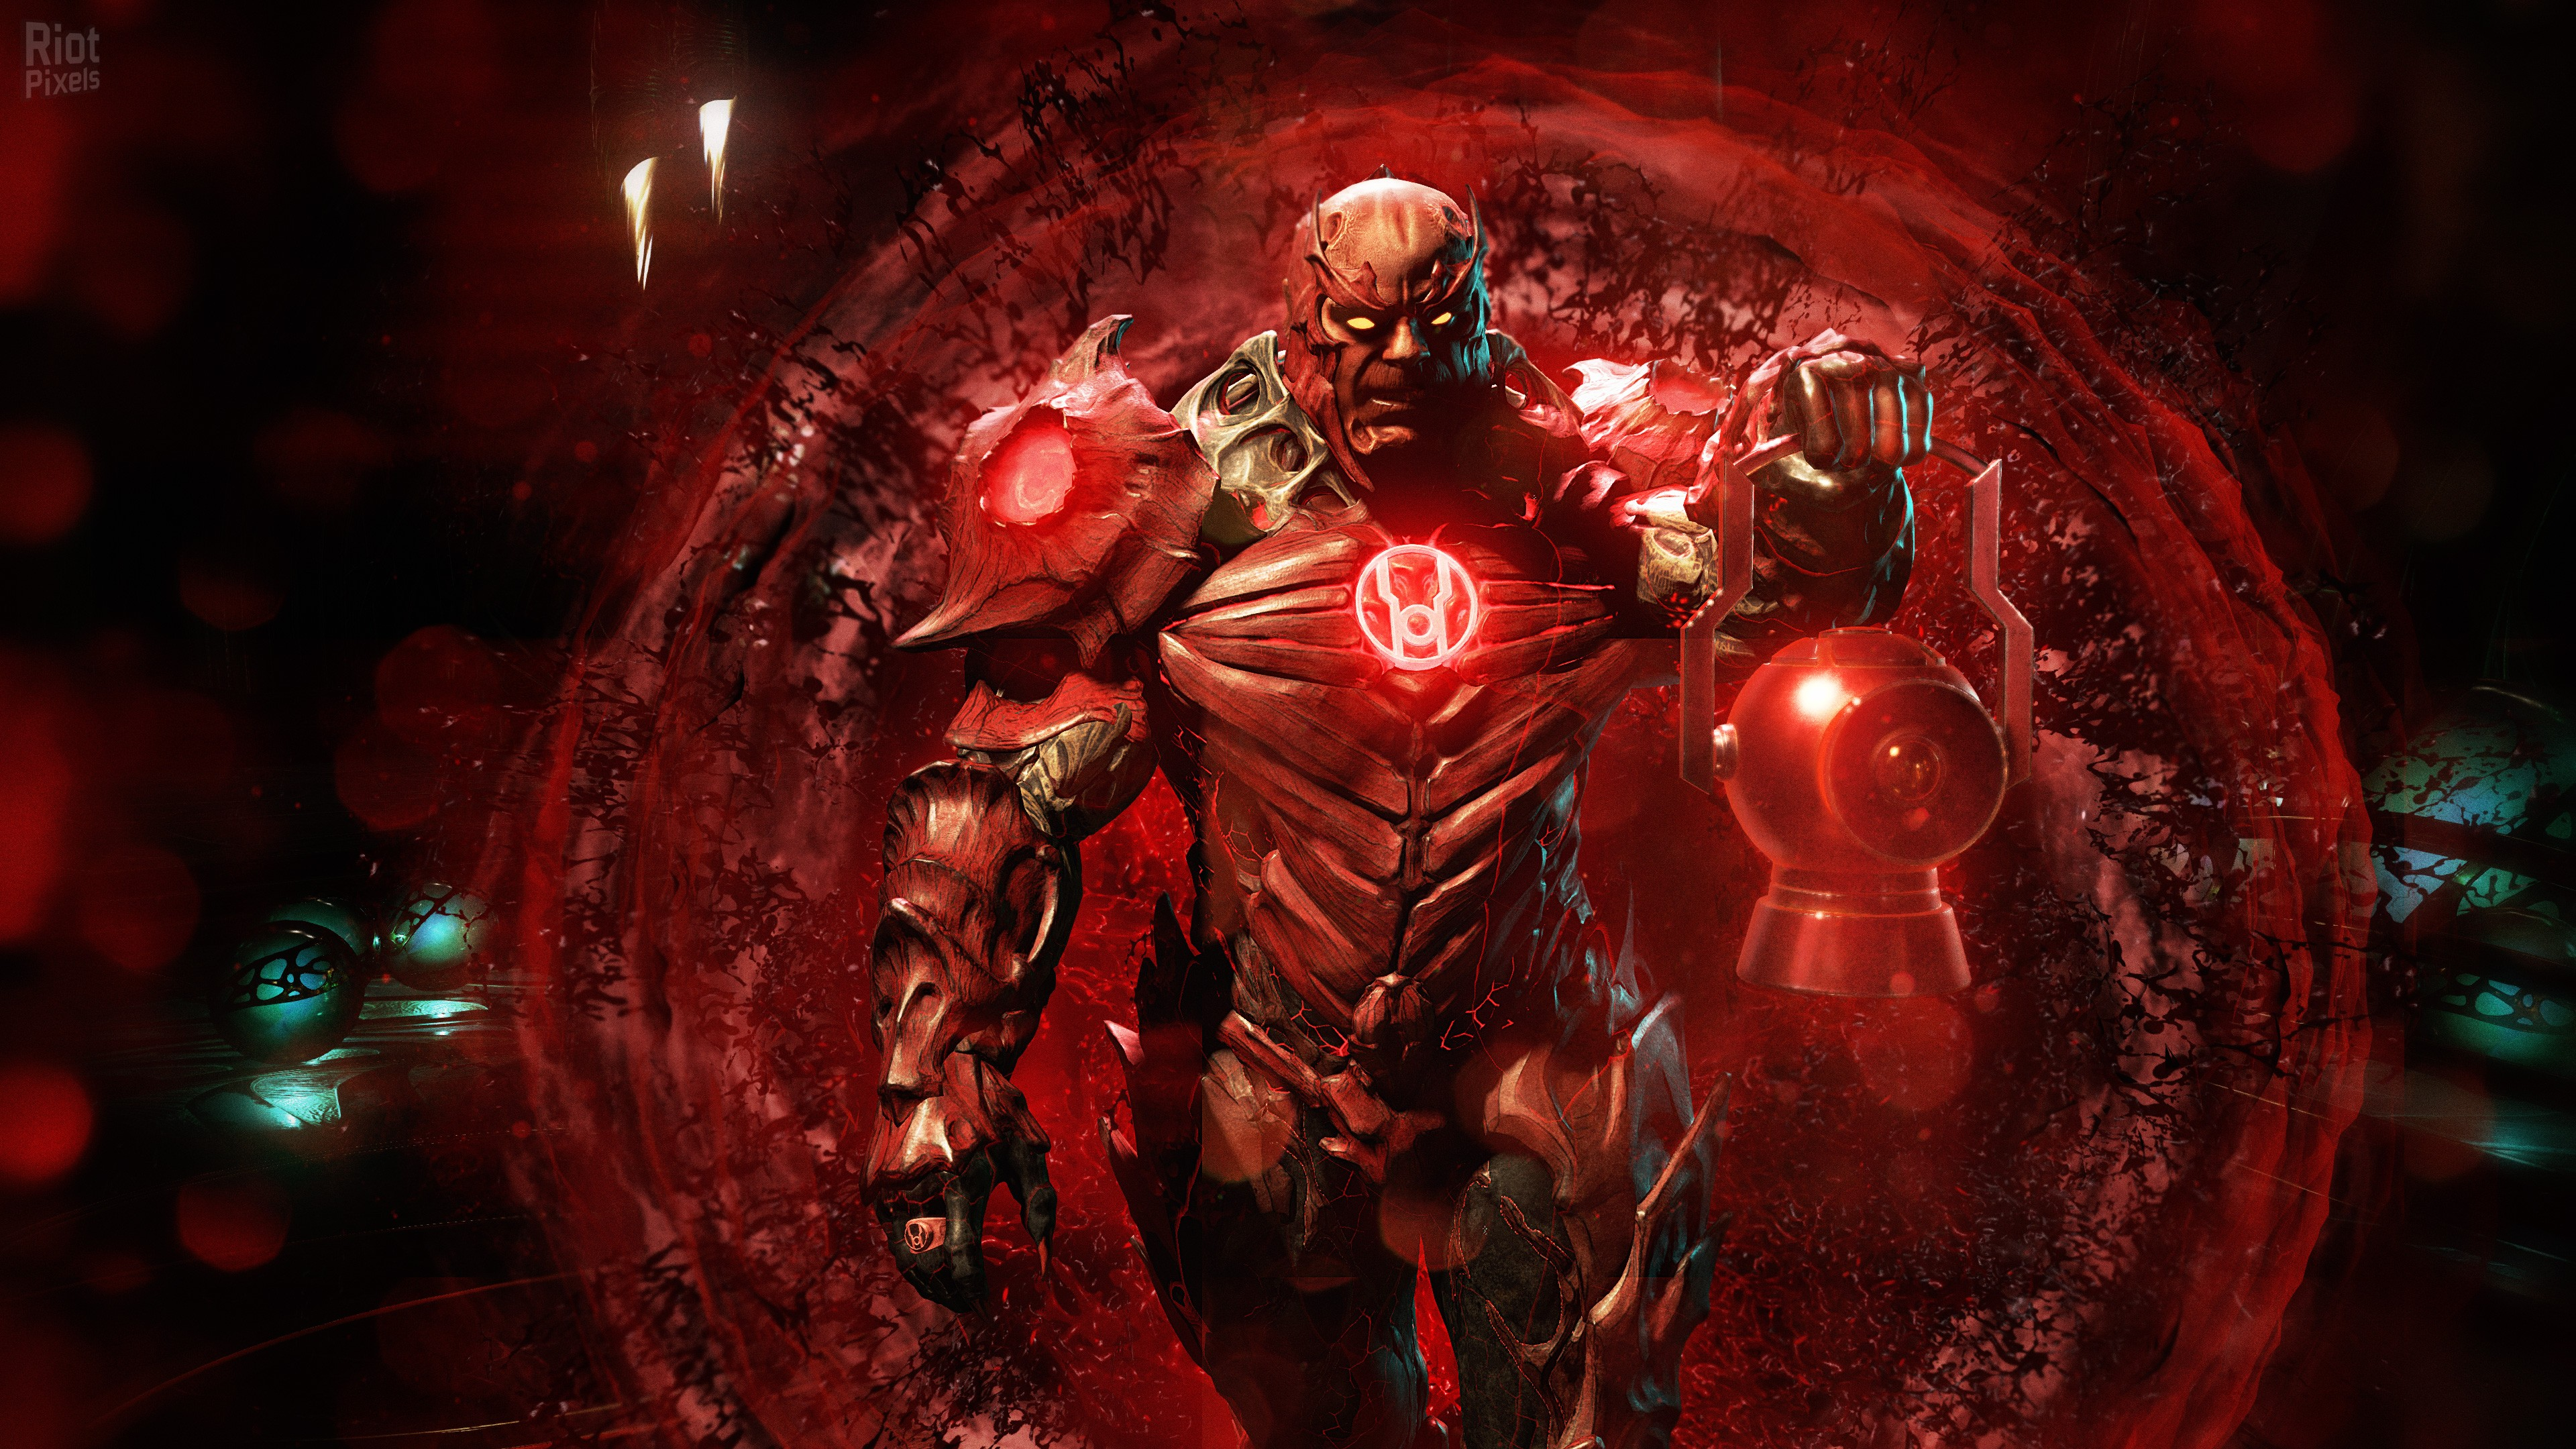 Wallpaper injustice 2 atrocitus fighting pc playstation ps4 your resolution 1024x1024 voltagebd Choice Image